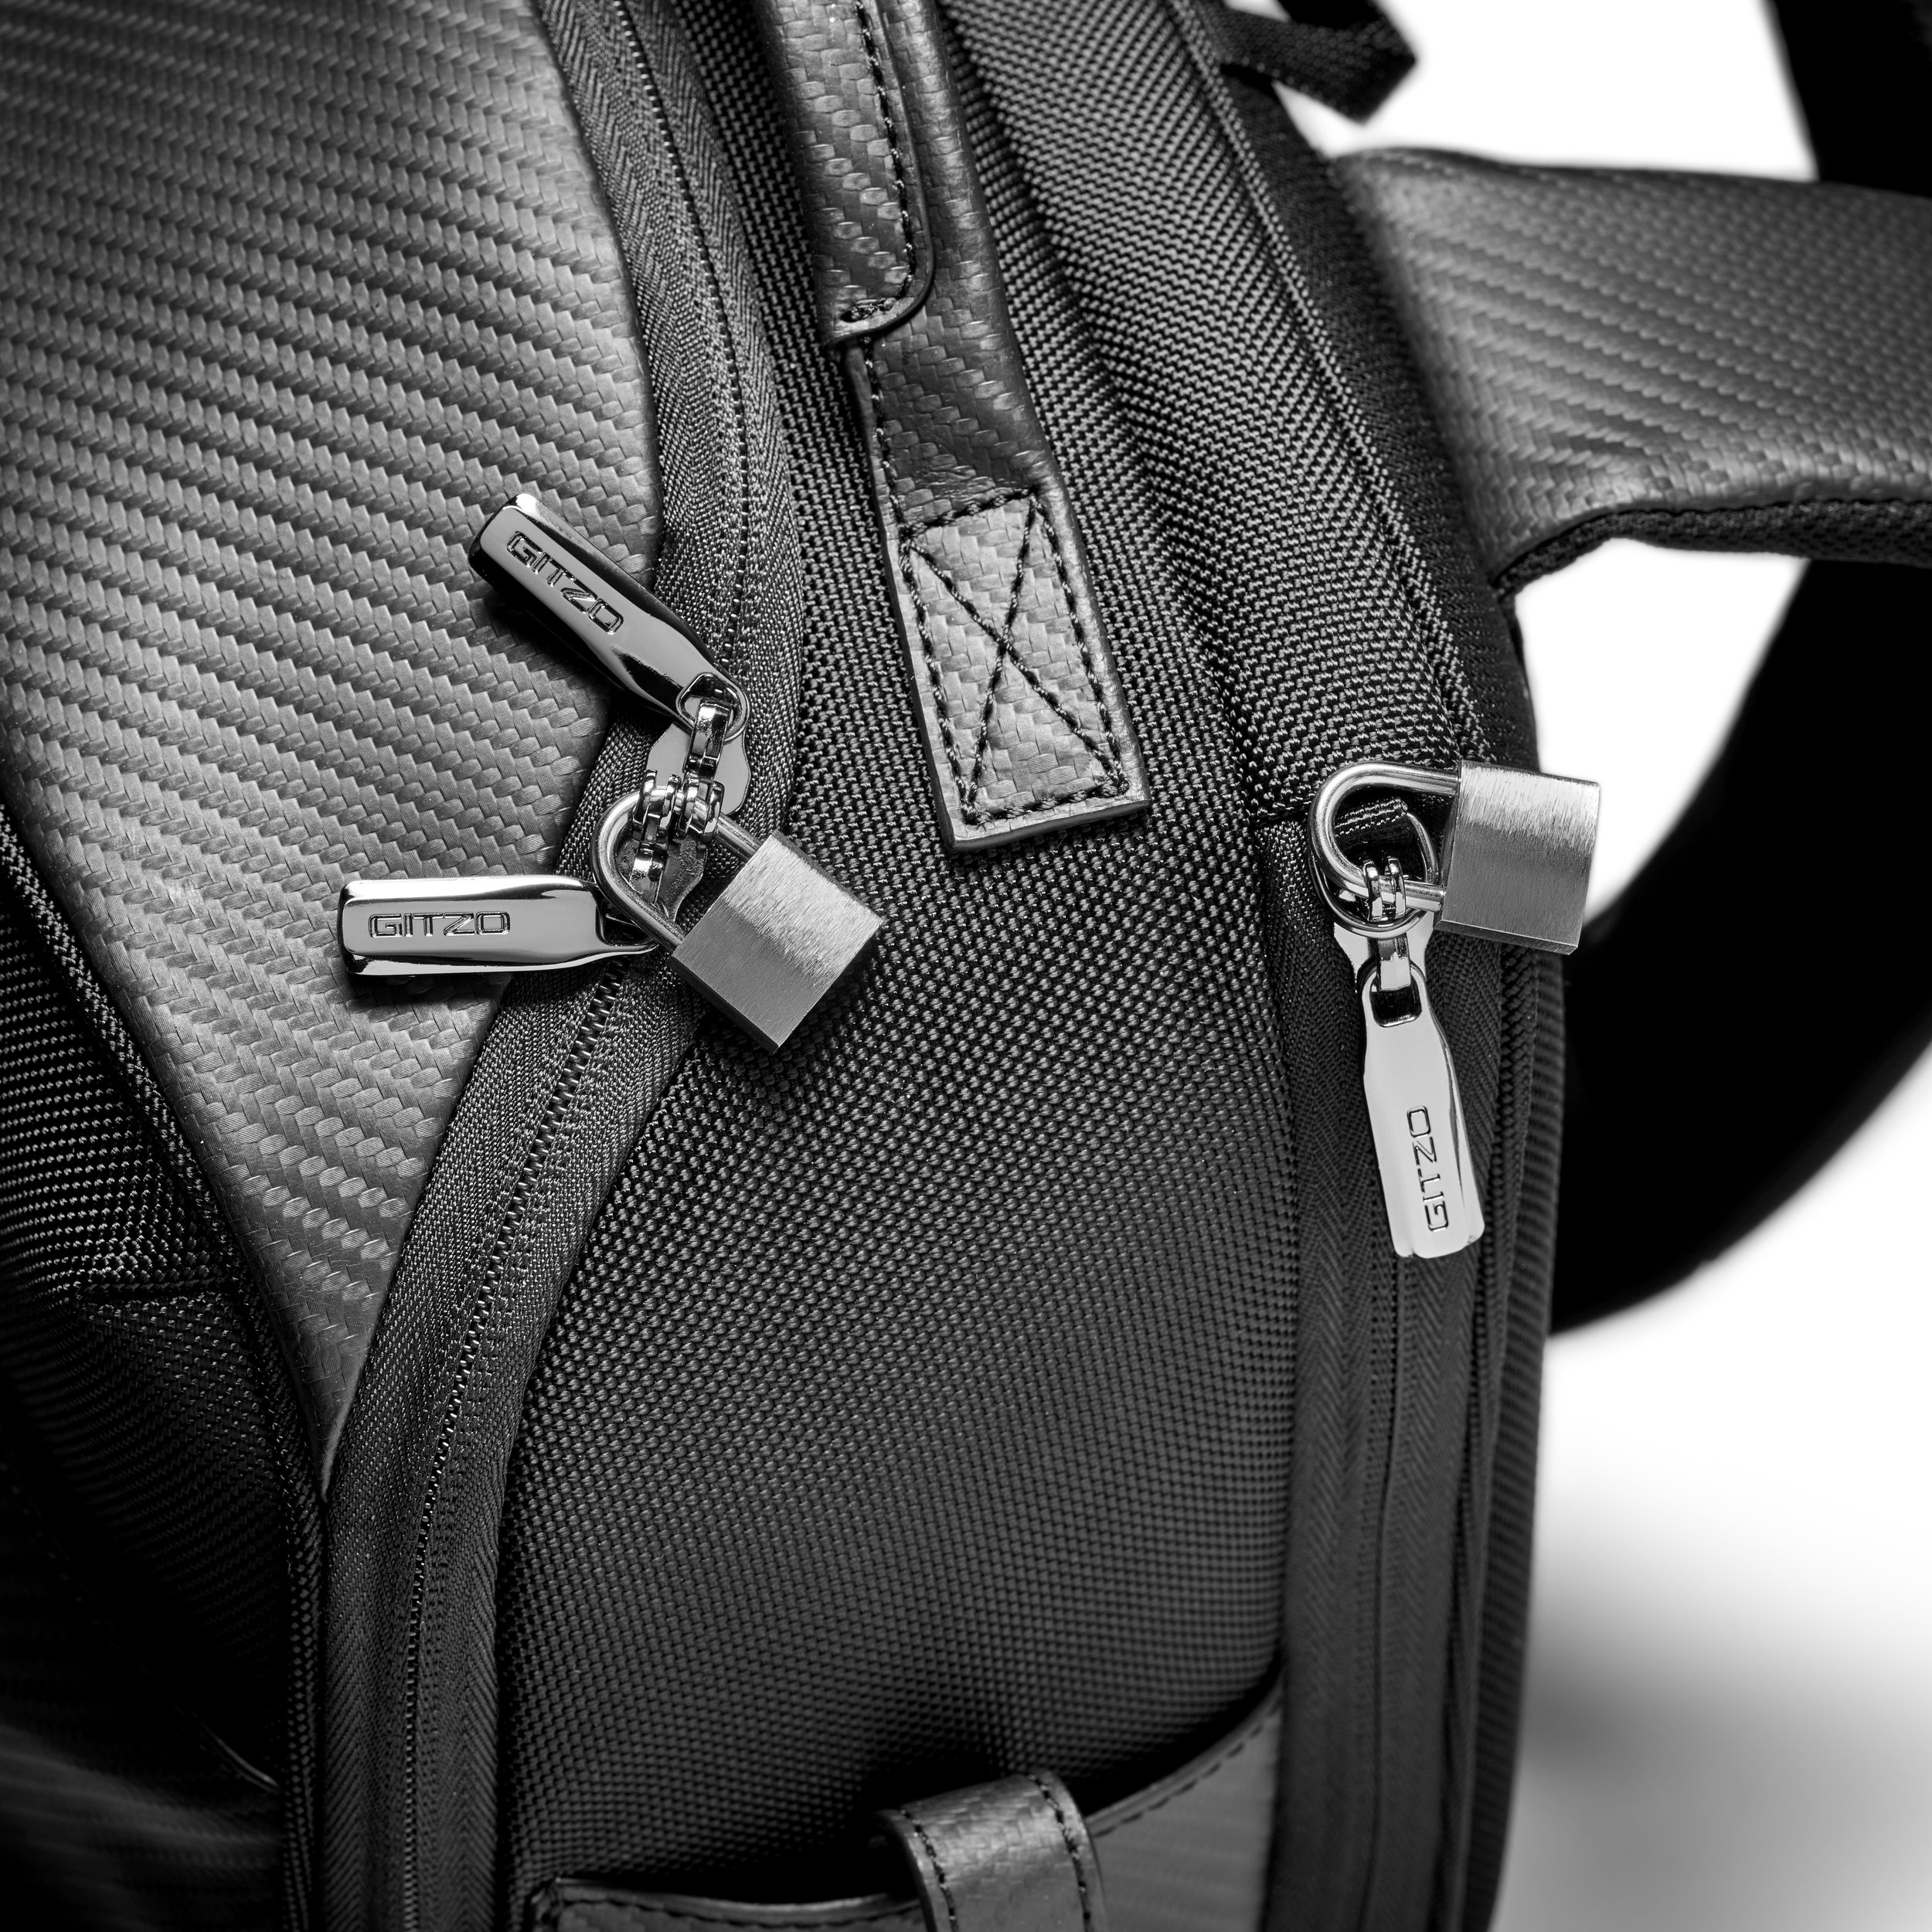 HR-GITZO_camera_bag_GCB100BP_lockable zip.jpg